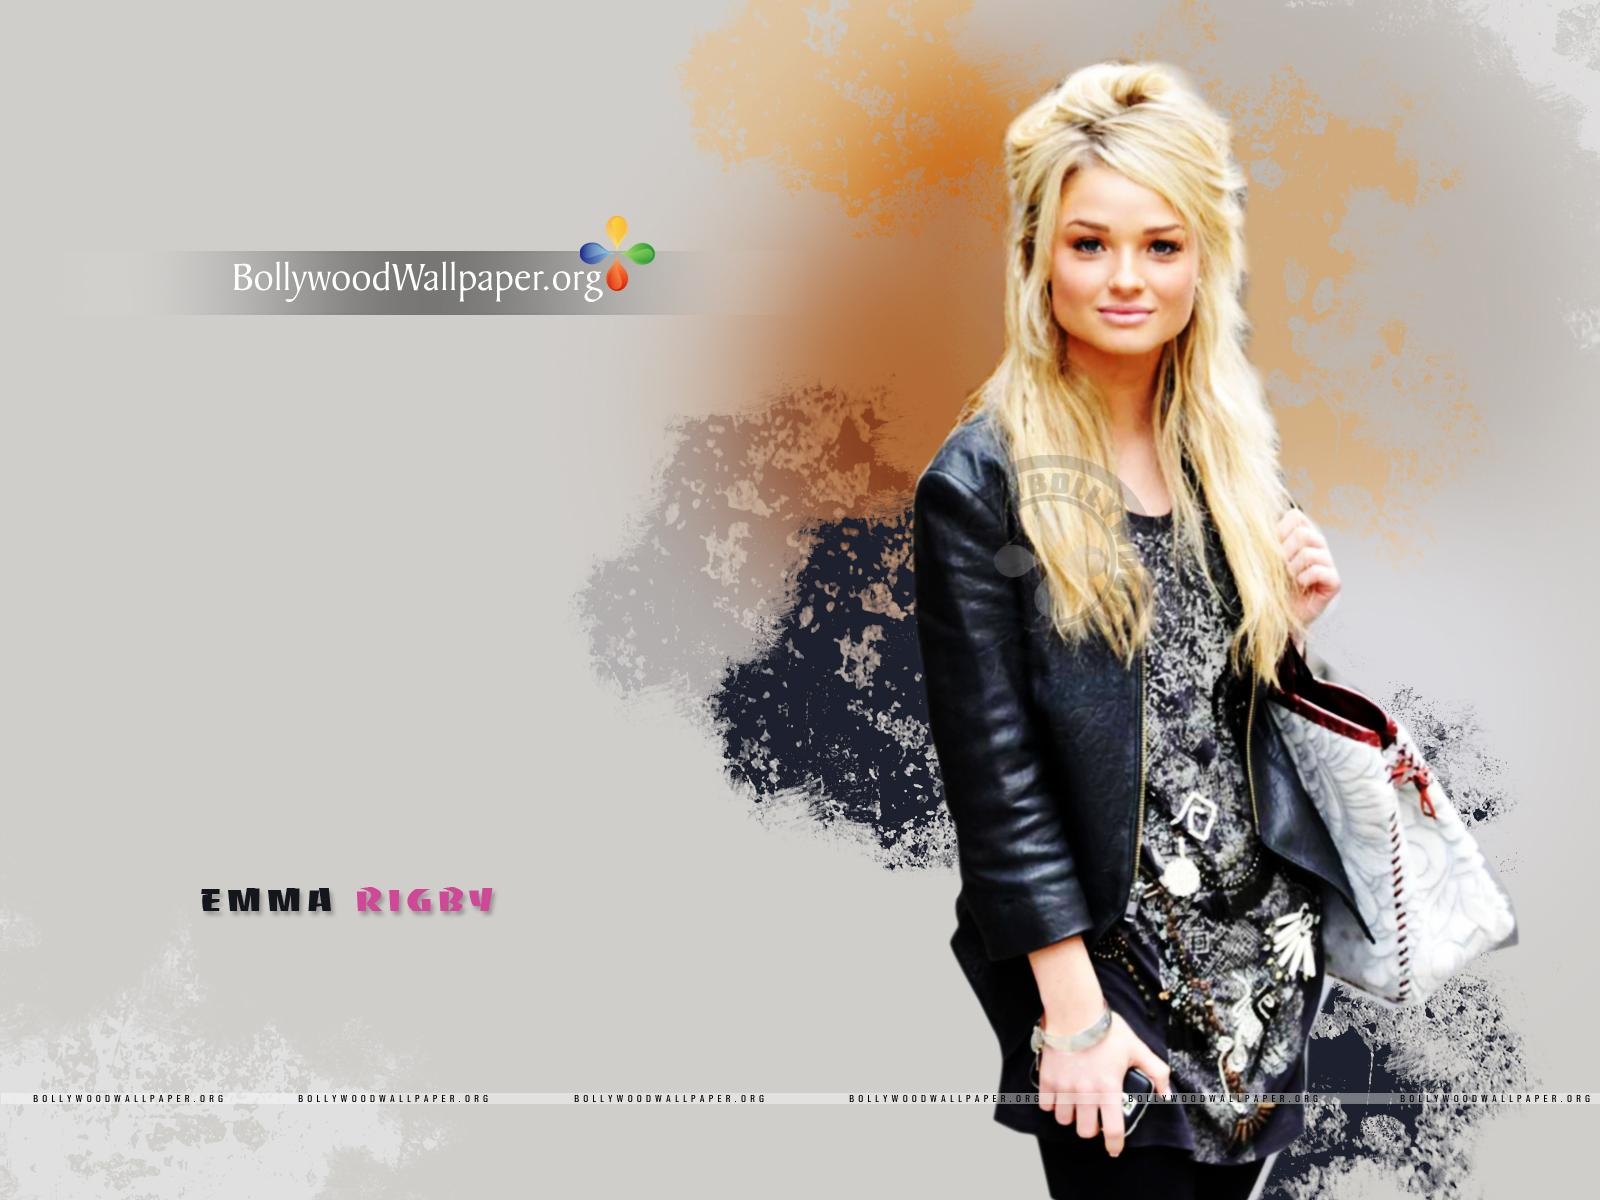 Emma rigby photos pictures stills images wallpapers gallery - Emma Rigby Hd Wallpaper